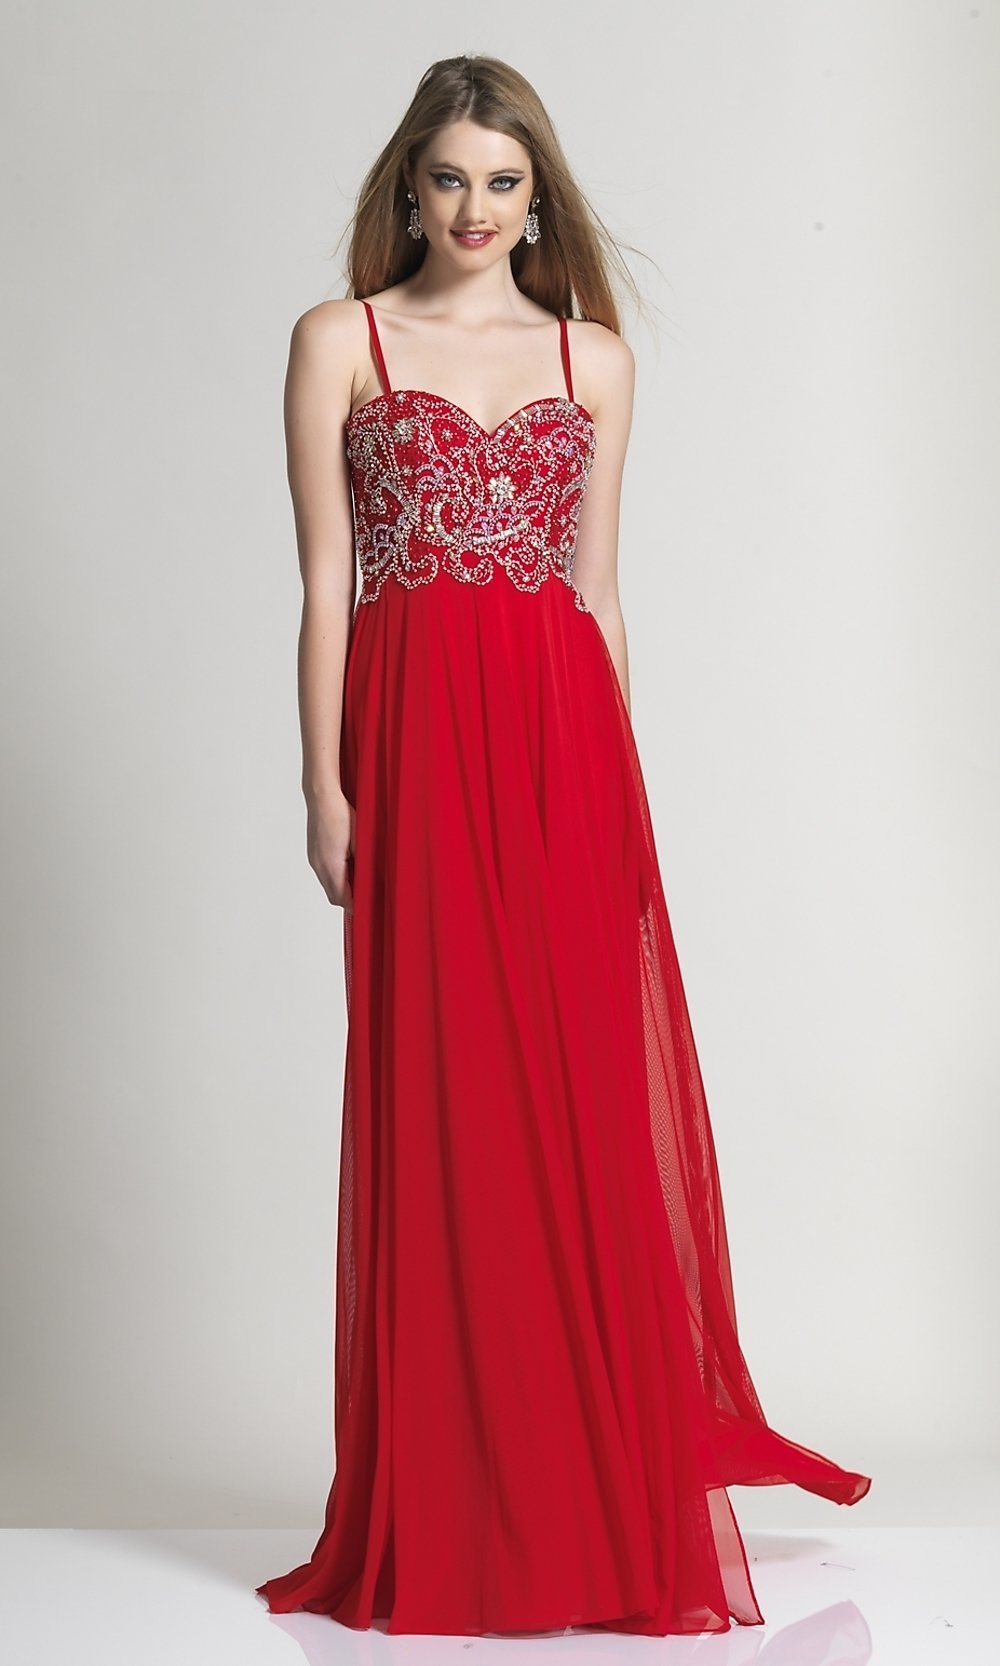 Prom dresses online cheap us